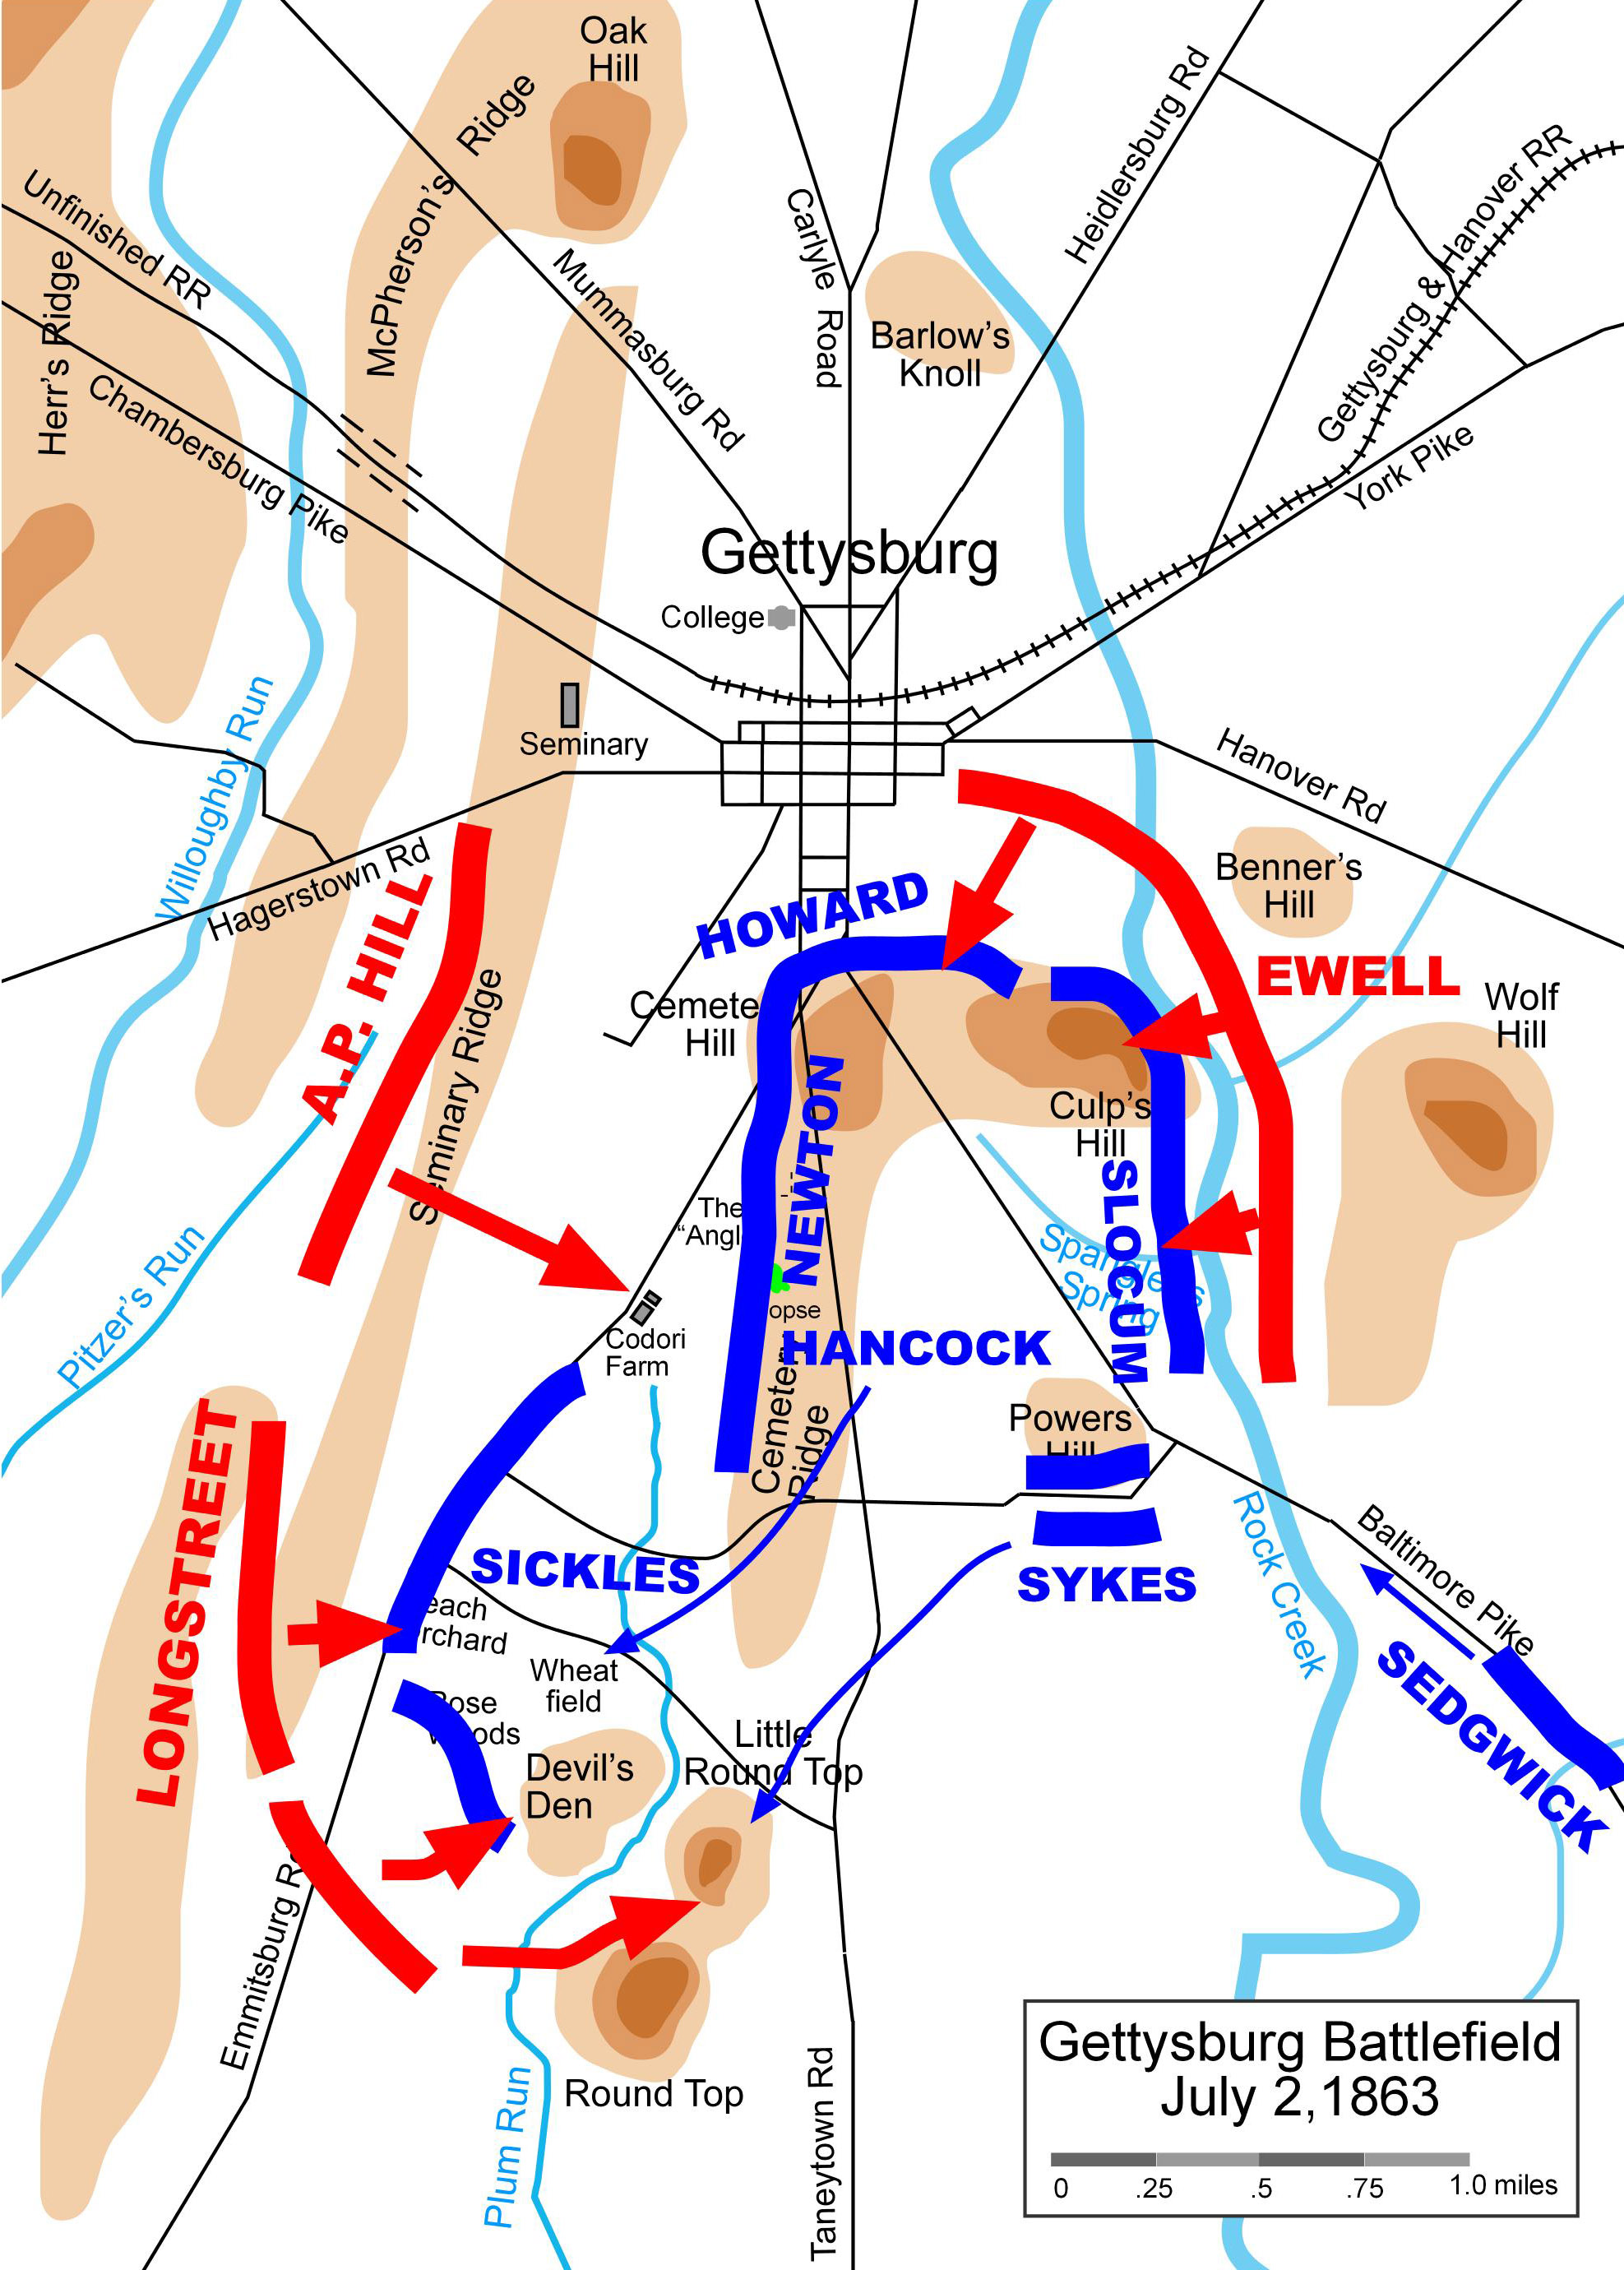 Battle of Gettysburg Map image - Blue vs. Grey mod for Men ... on scranton on map, appomattox on map, atlanta on us map, pierre on map, chancellorsville on map, underground railroad on map, fairfield on map, port hudson on map, vicksburg on map, fort sumter on map, penn hills on map, shay's rebellion on map, cumberland county on map, allegheny national forest on map, antietam on map, huron on map, paradise on map, mount carmel on map, kadoka on map, hershey on map,